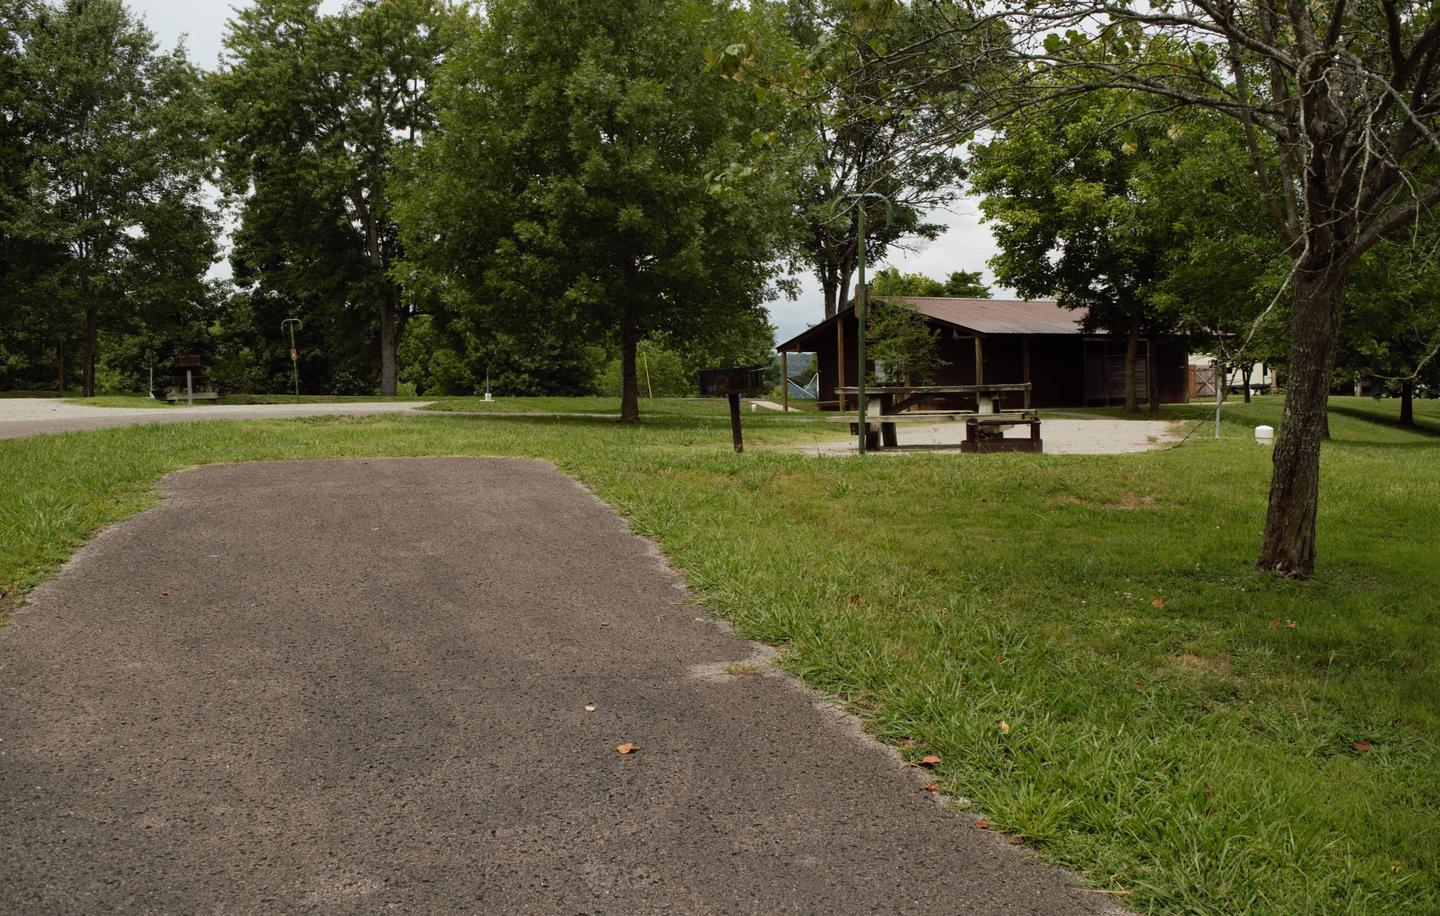 LILLYDALE CAMPGROUND SITE #3